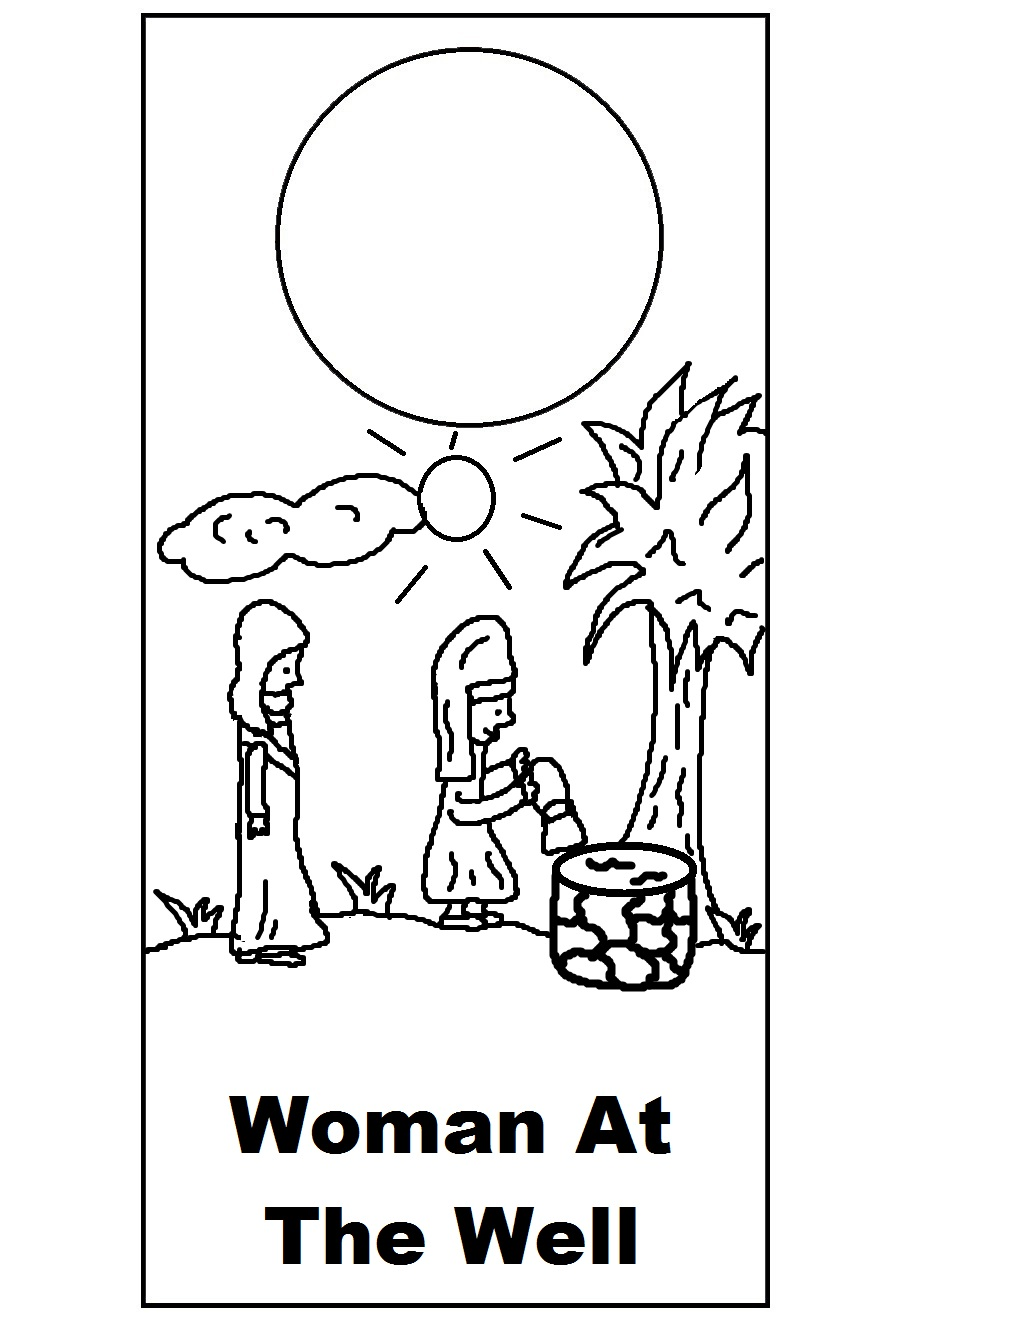 Free Samaritan Woman At Well Coloring Pages At The Well Coloring Pages